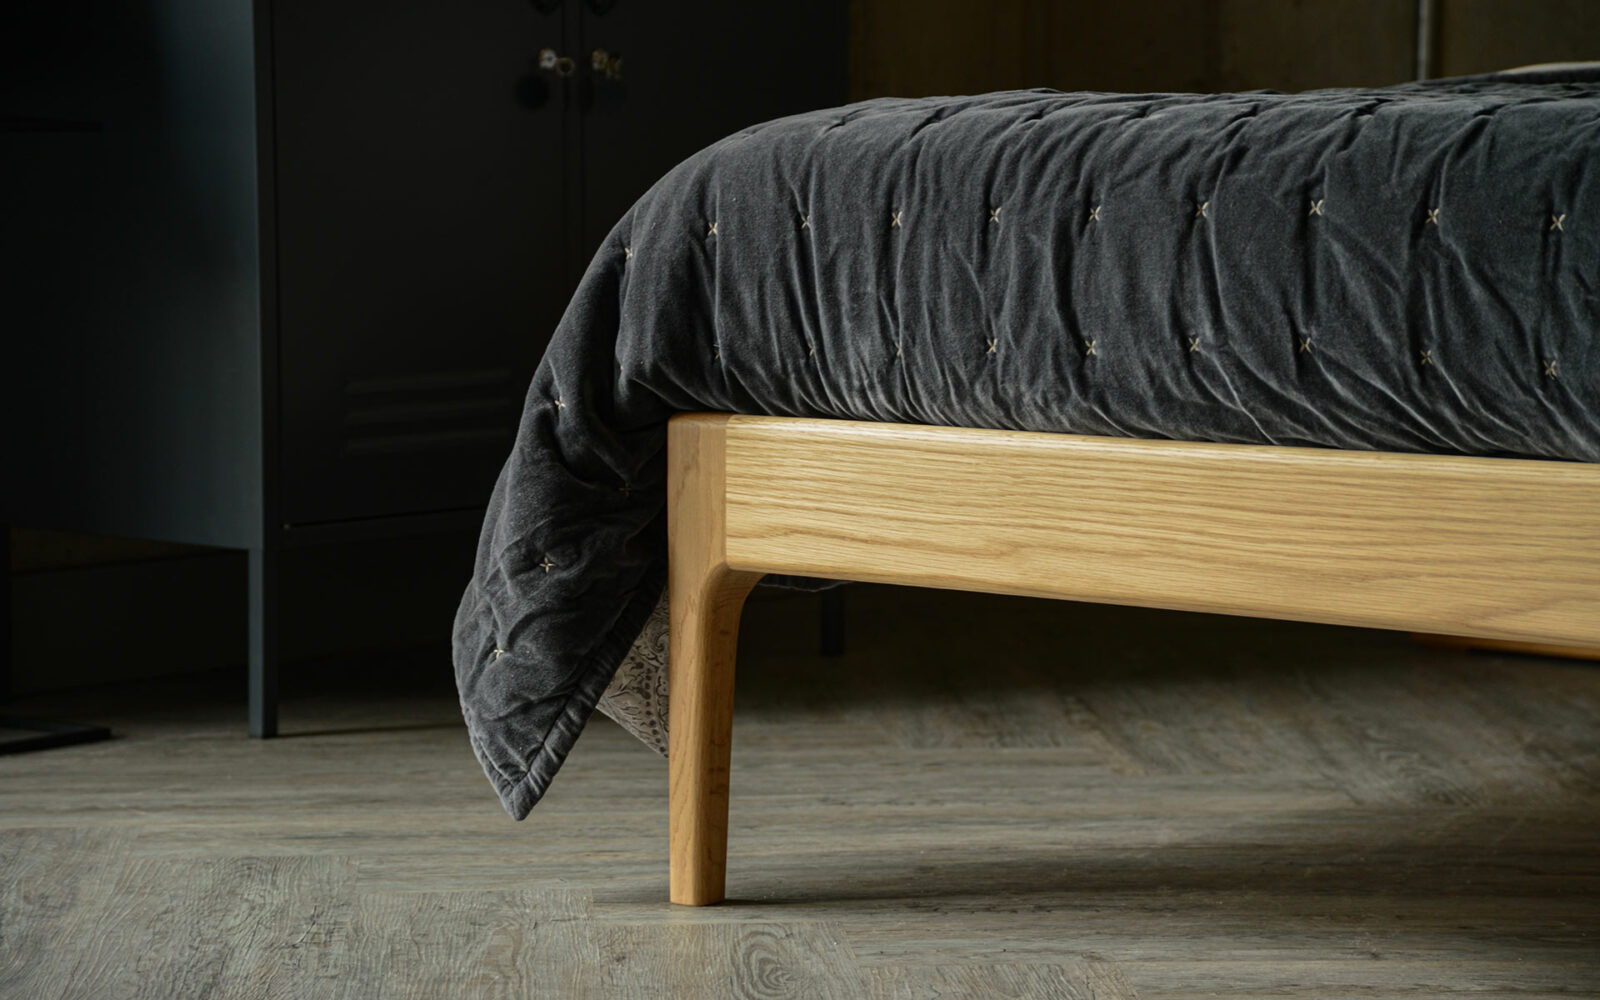 Curved oak bed leg detail with grey slate quilt